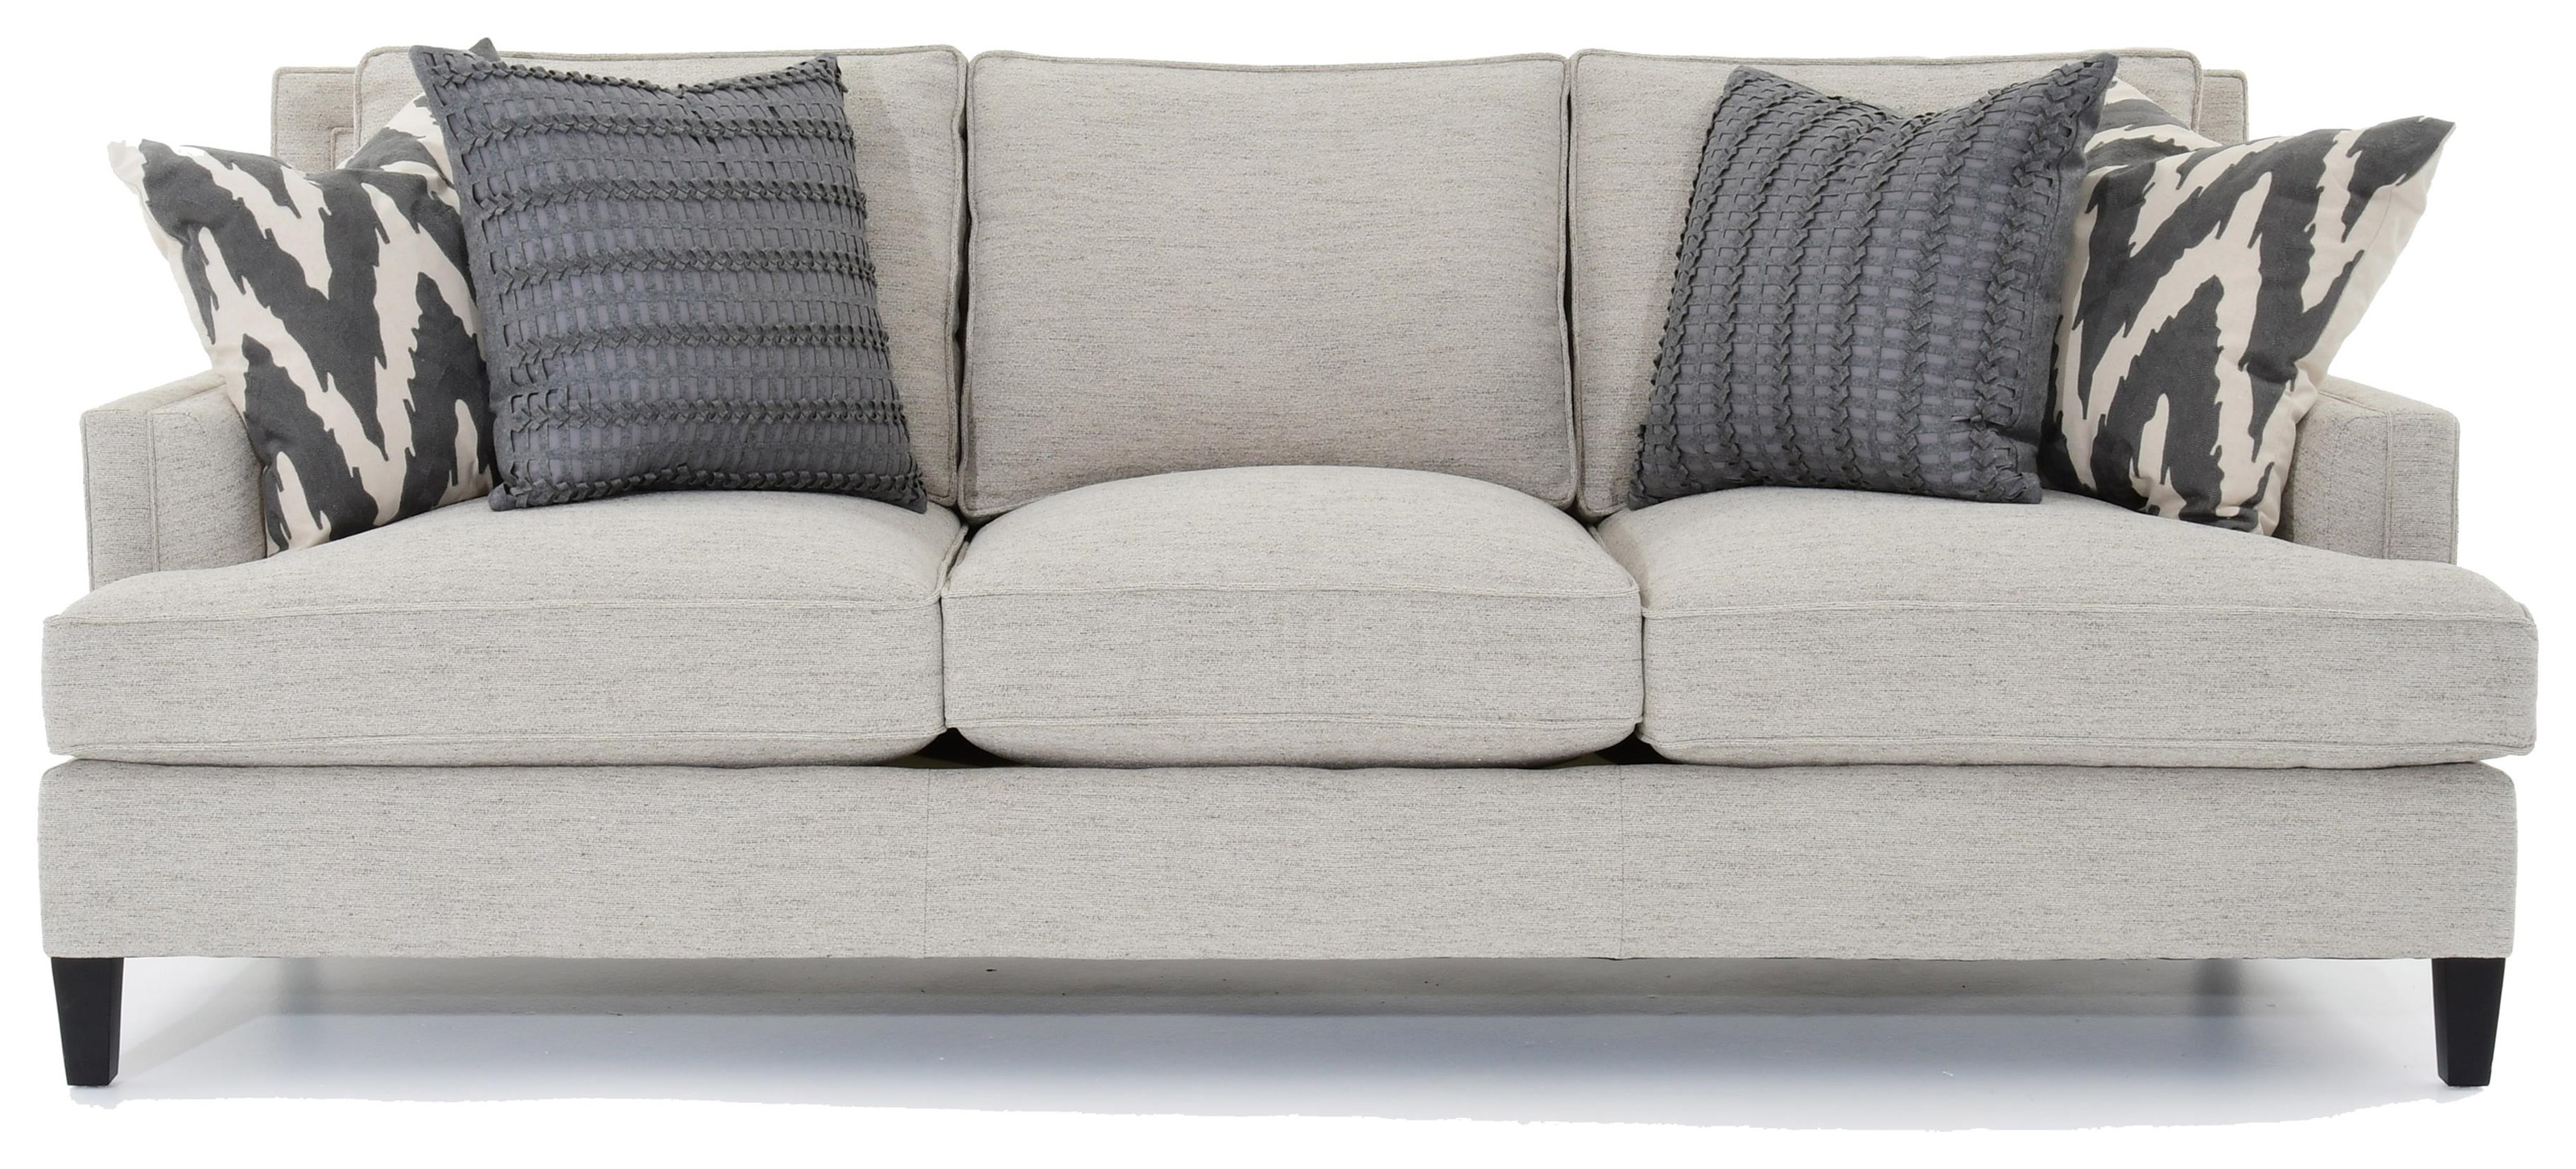 Bernhardt Addison Casual Styled Sofa - Item Number: B1487A 1011-002E